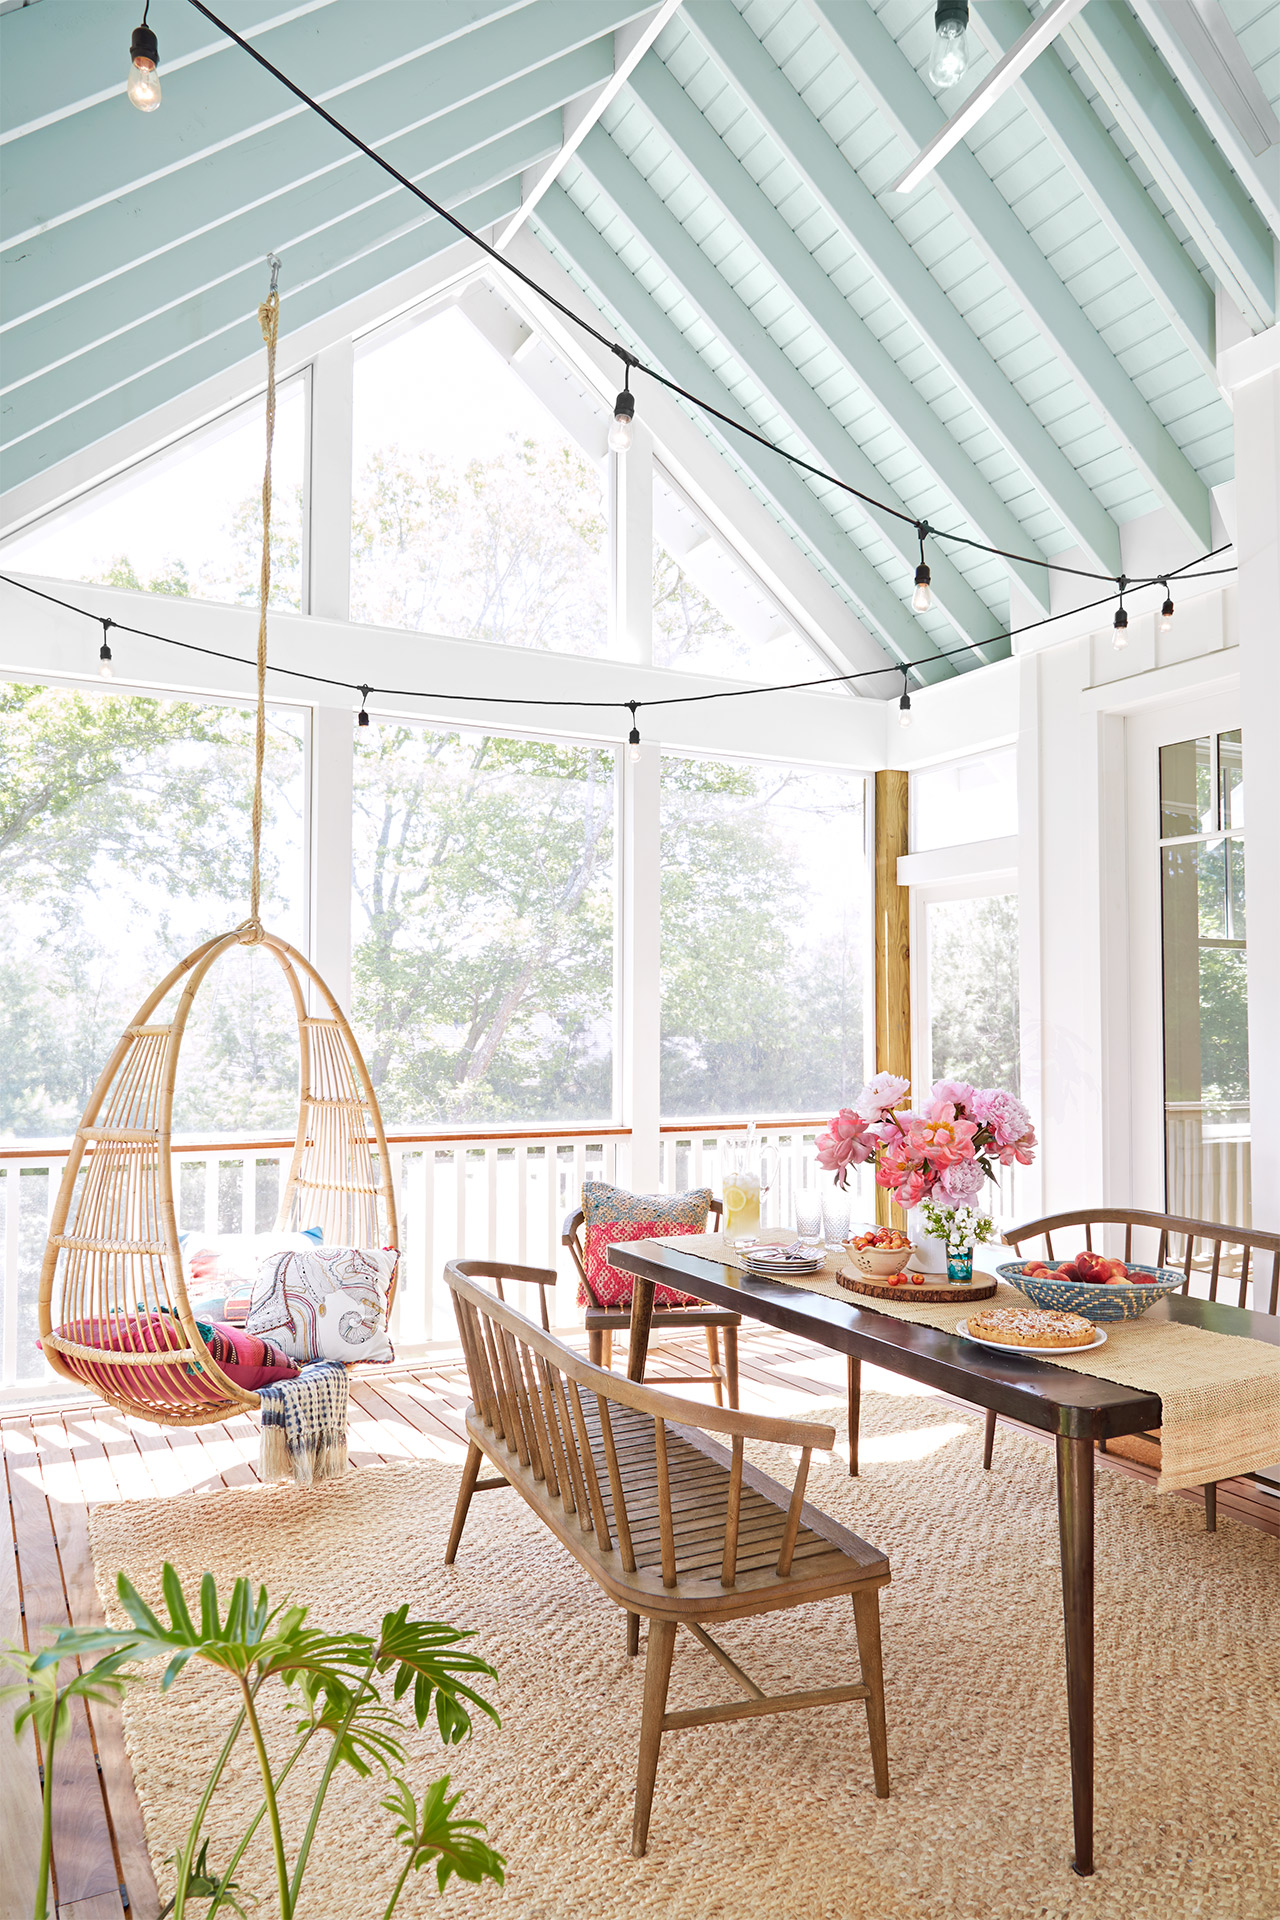 table with flowers by hanging chair on porch